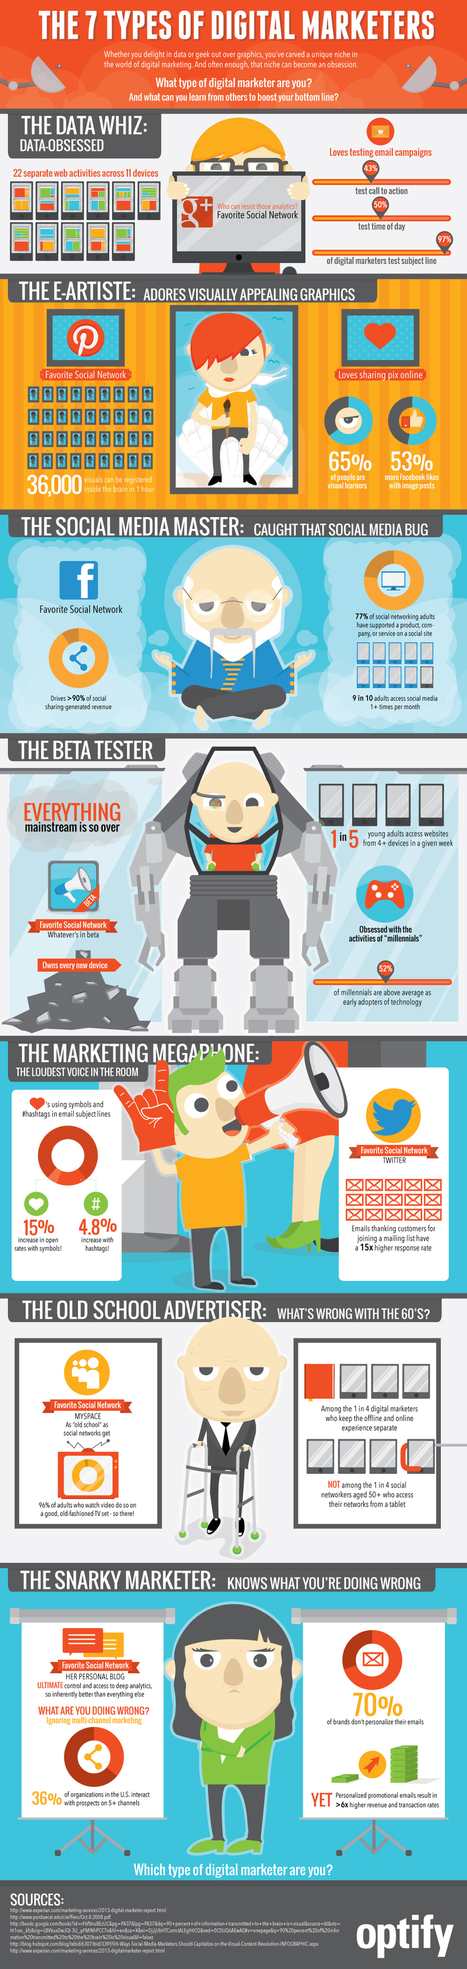 Optify | [INFOGRAPHIC]: The 7 Types of Digital Marketers | Everything Marketing You Can Think Of | Scoop.it